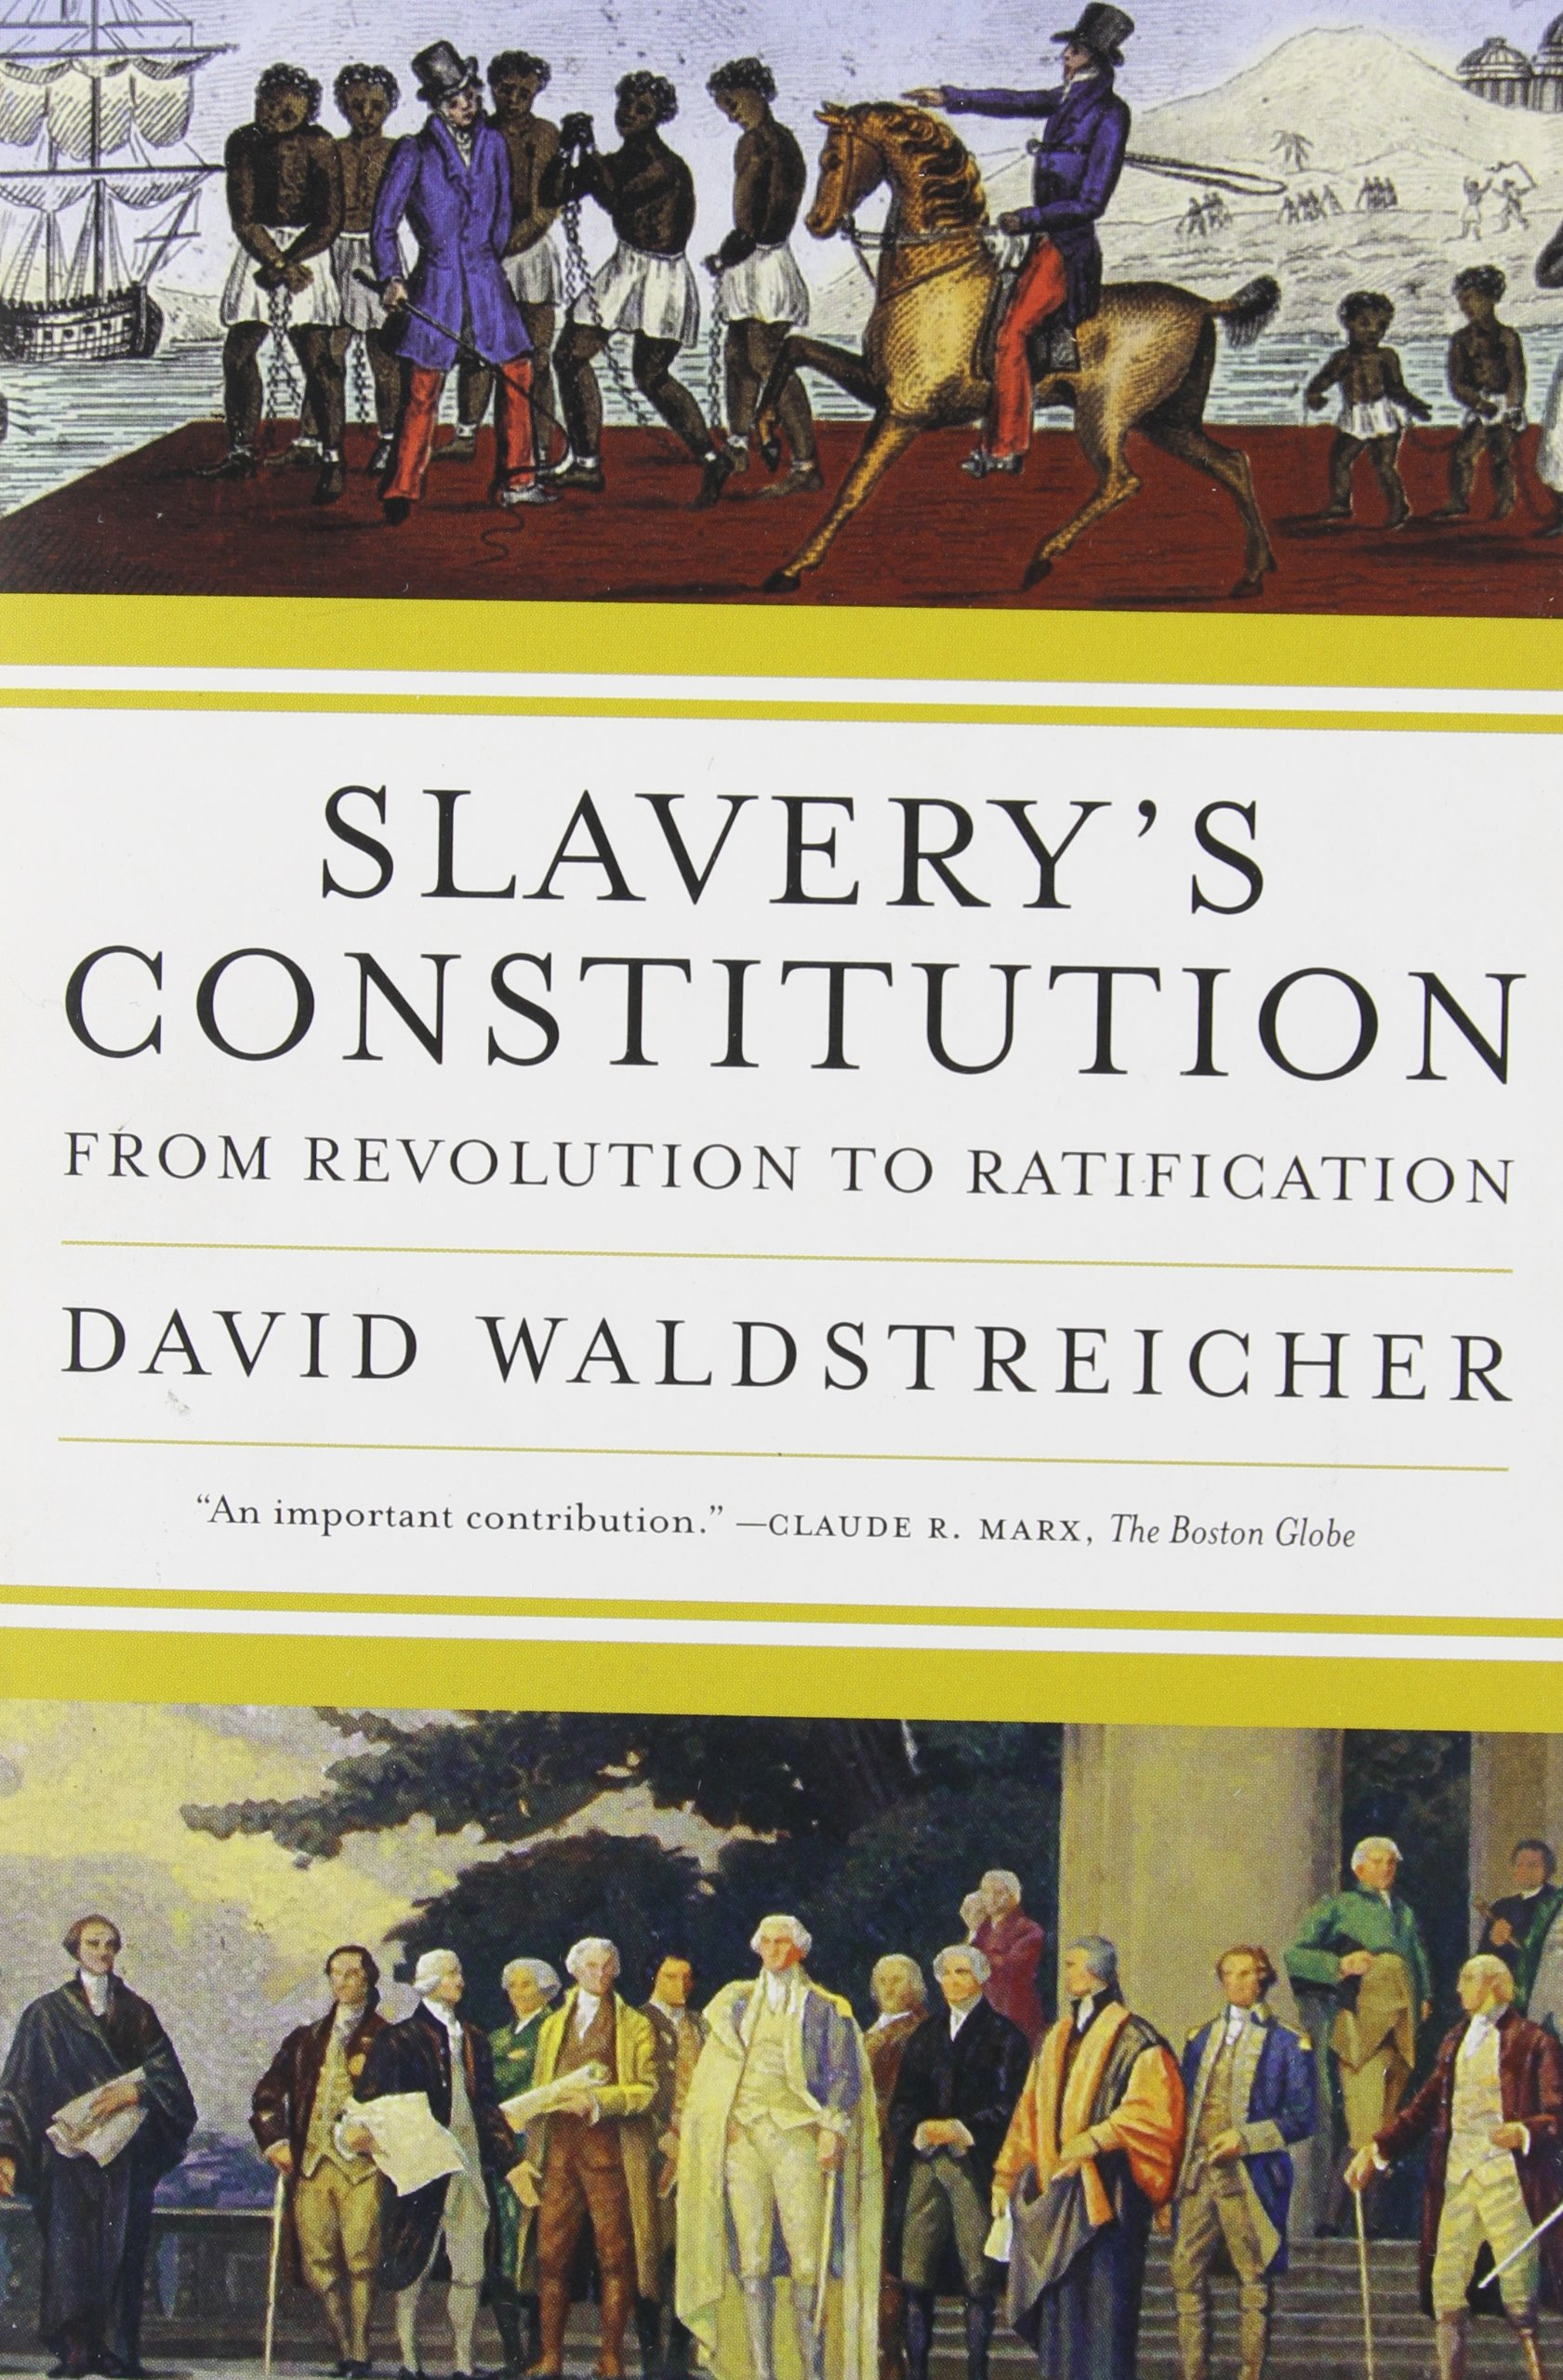 Slavery's Constitution: From Revolution to Ratification (Inglese) Copertina flessibile – 5 lug 2010 David Waldstreicher Hill & Wang Pub 0809016508 USA